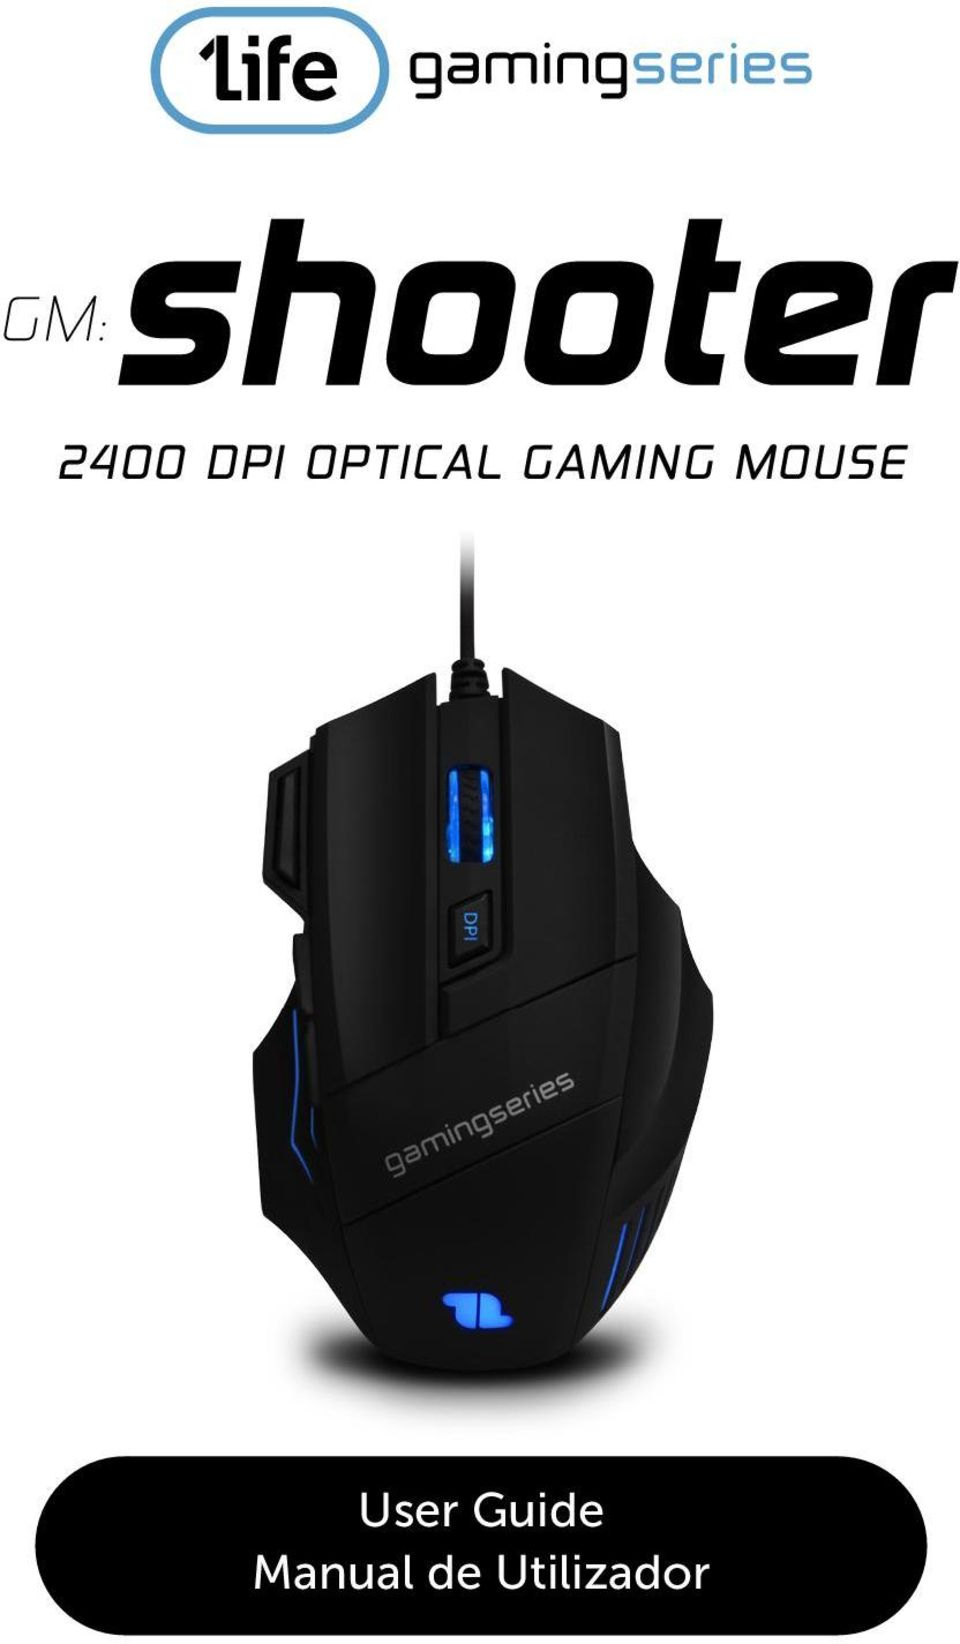 MOUSE User